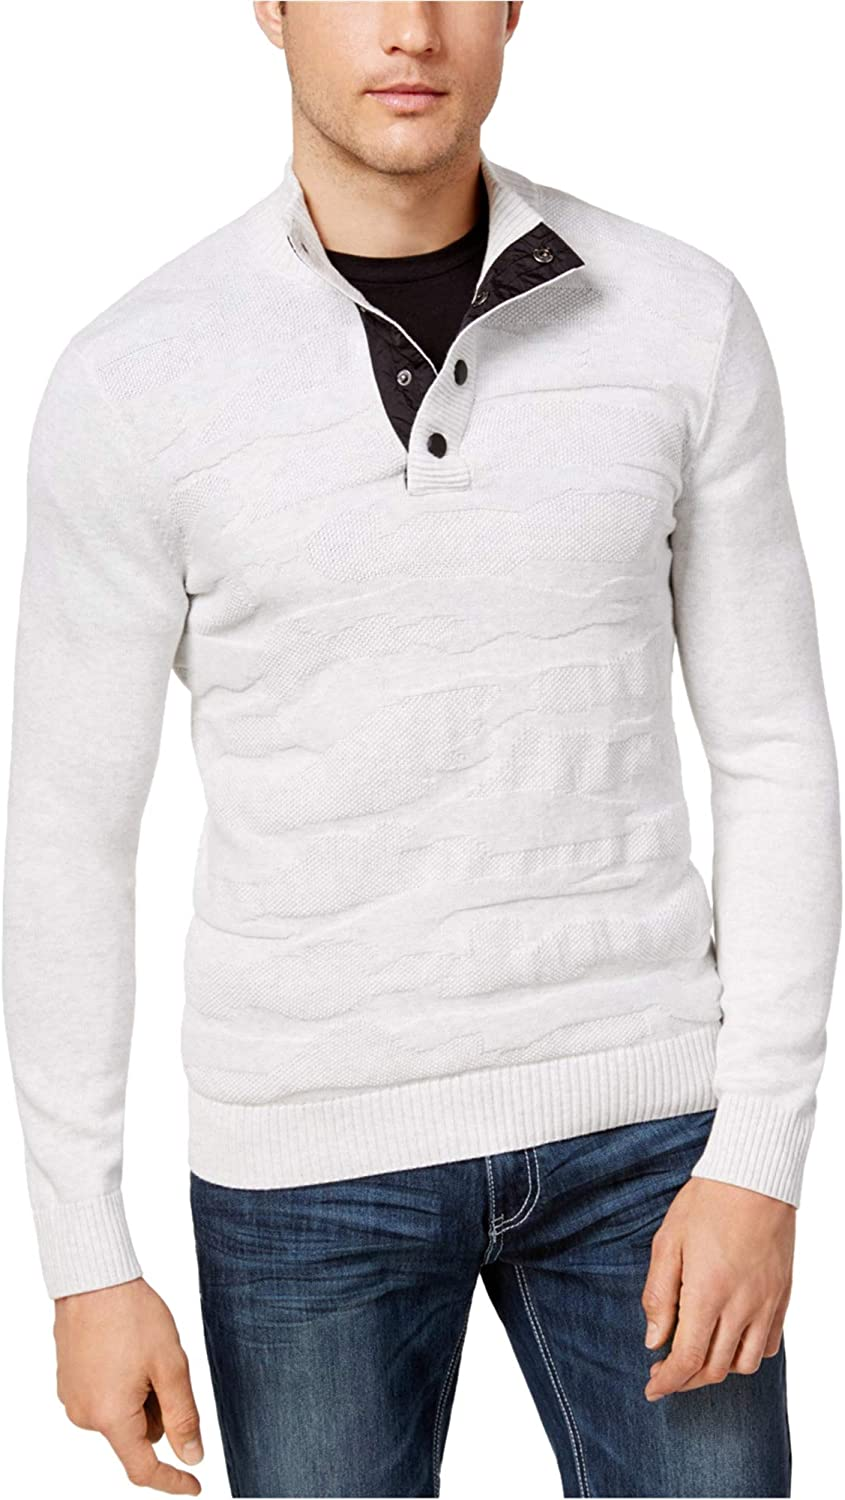 Max 76% OFF I-N-C Super-cheap Mens Cable Sweater Pullover